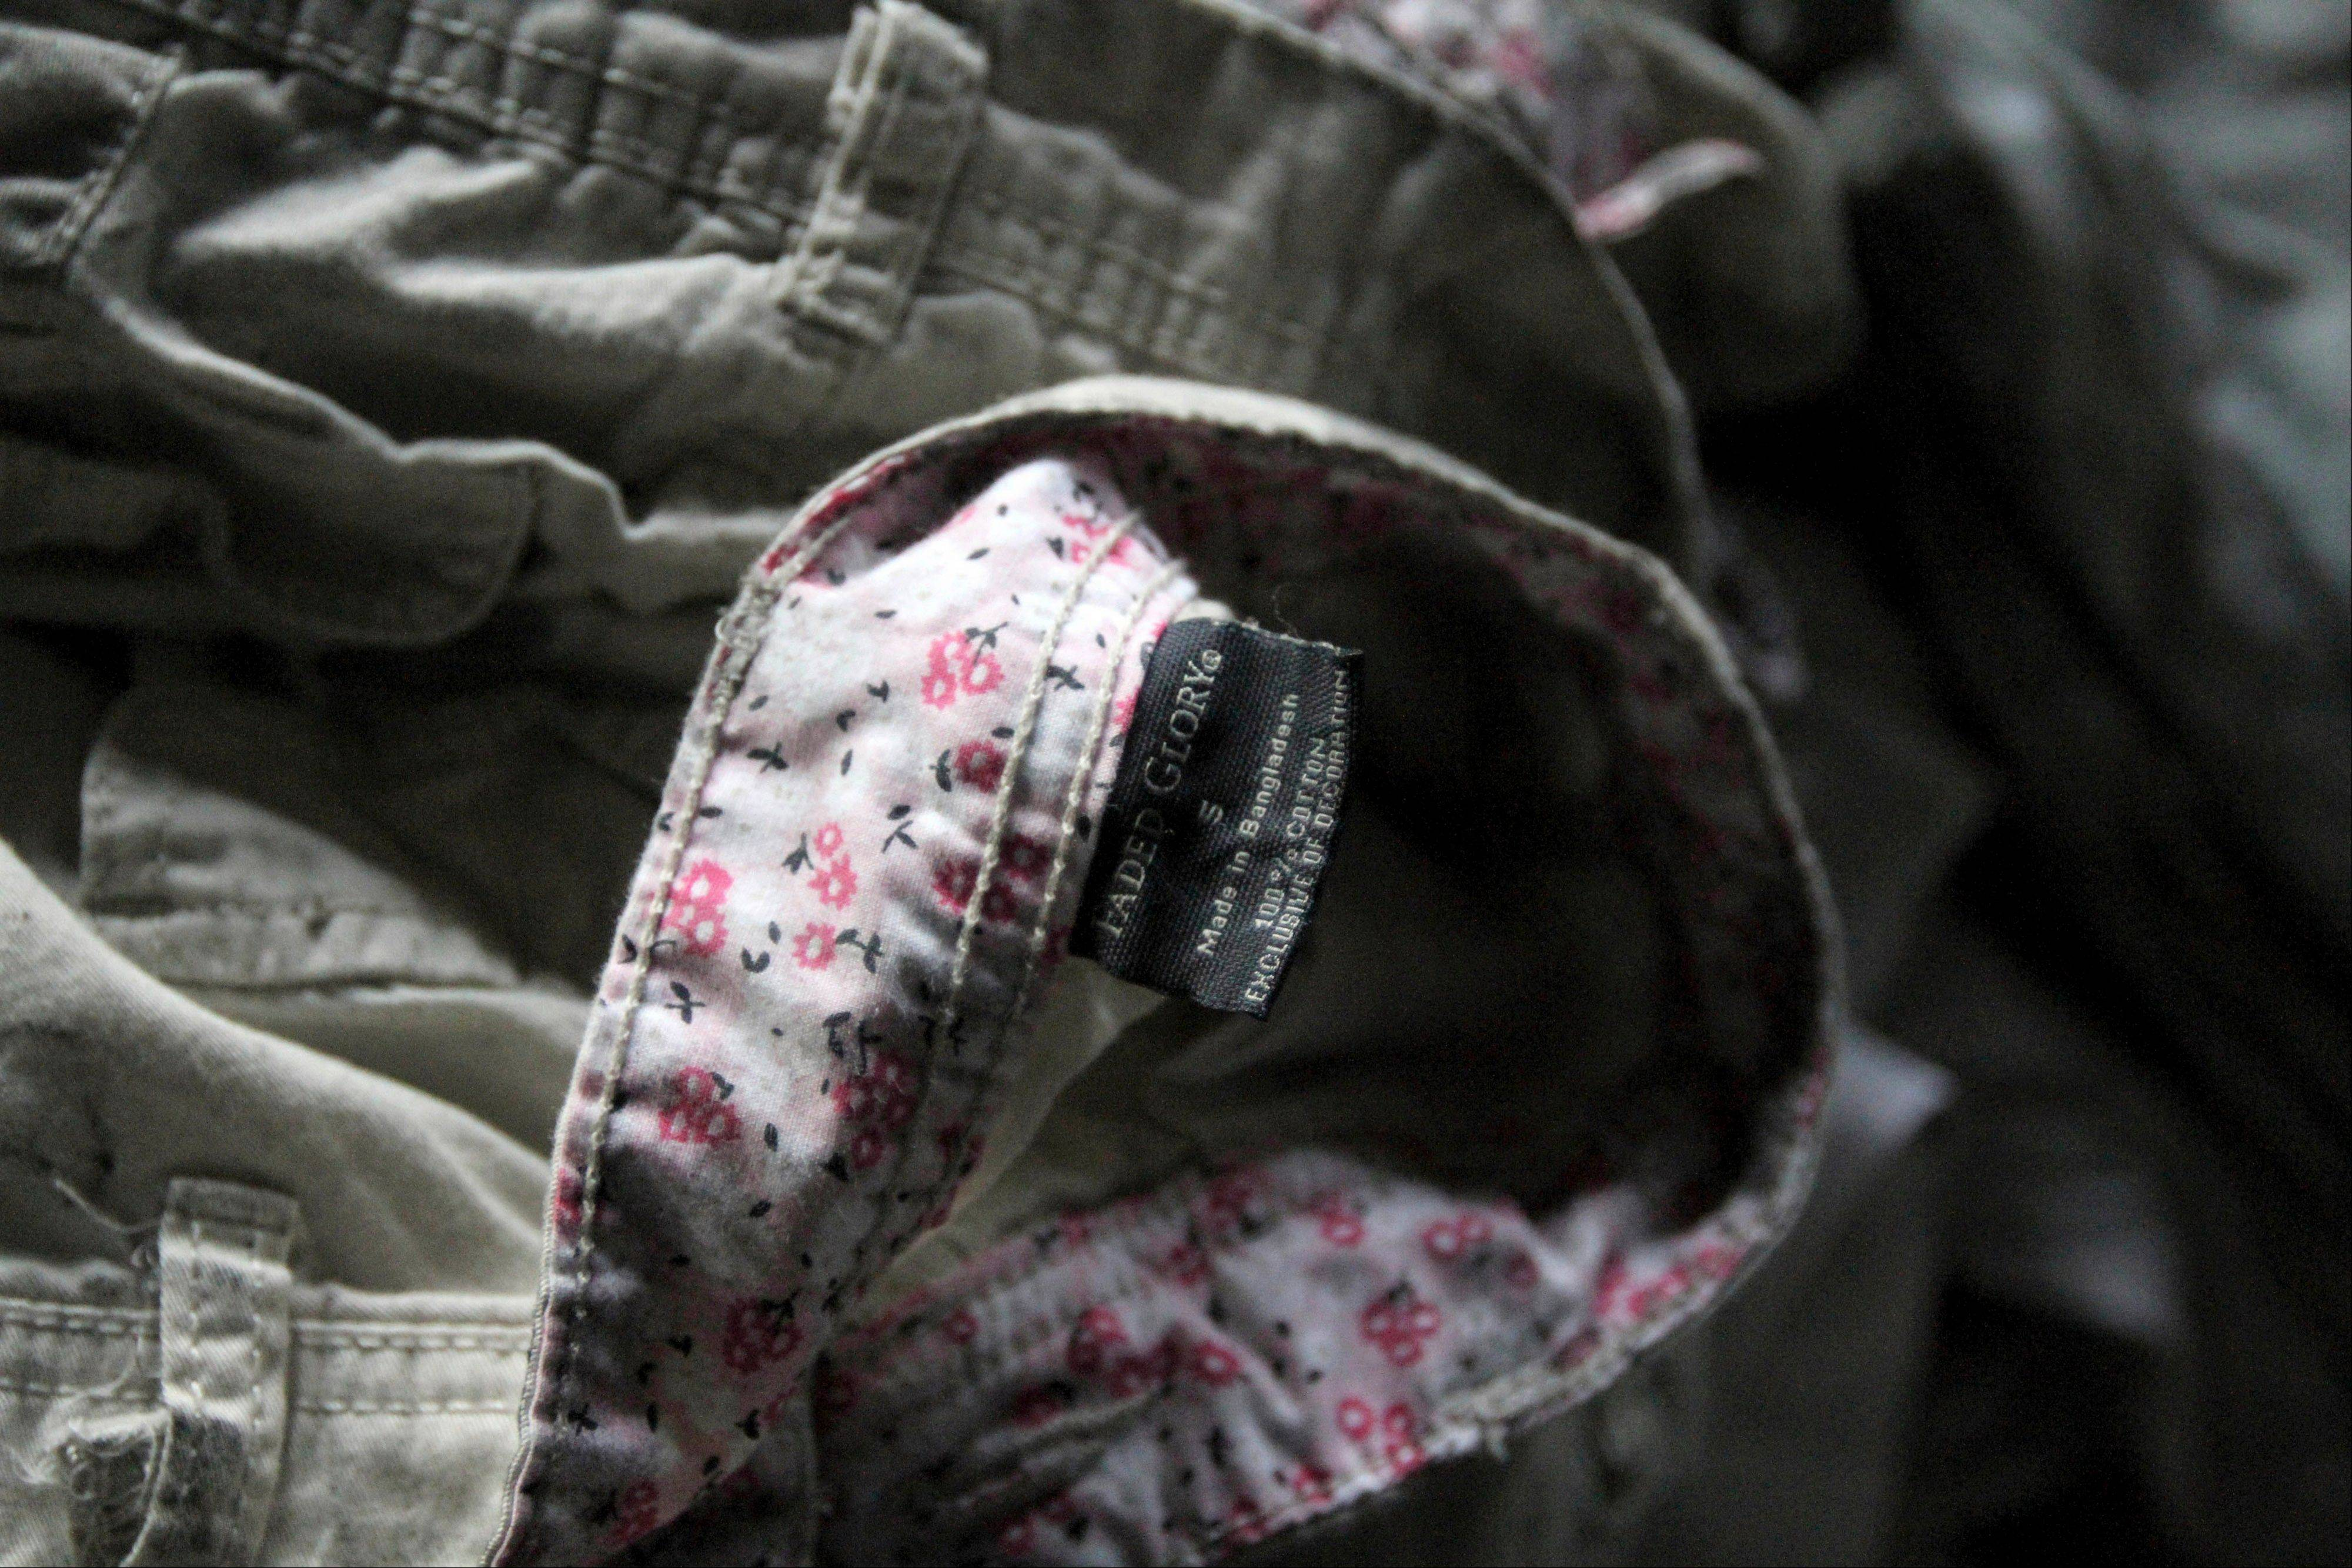 Walmart's Faded Glory label is seen on a piece of clothing laying among equipment charred in the fire that killed 112 workers Saturday at the Tazreen Fashions Ltd. factory, on the outskirts of Dhaha, Bangladesh, Wednesday, Nov. 28, 2012.